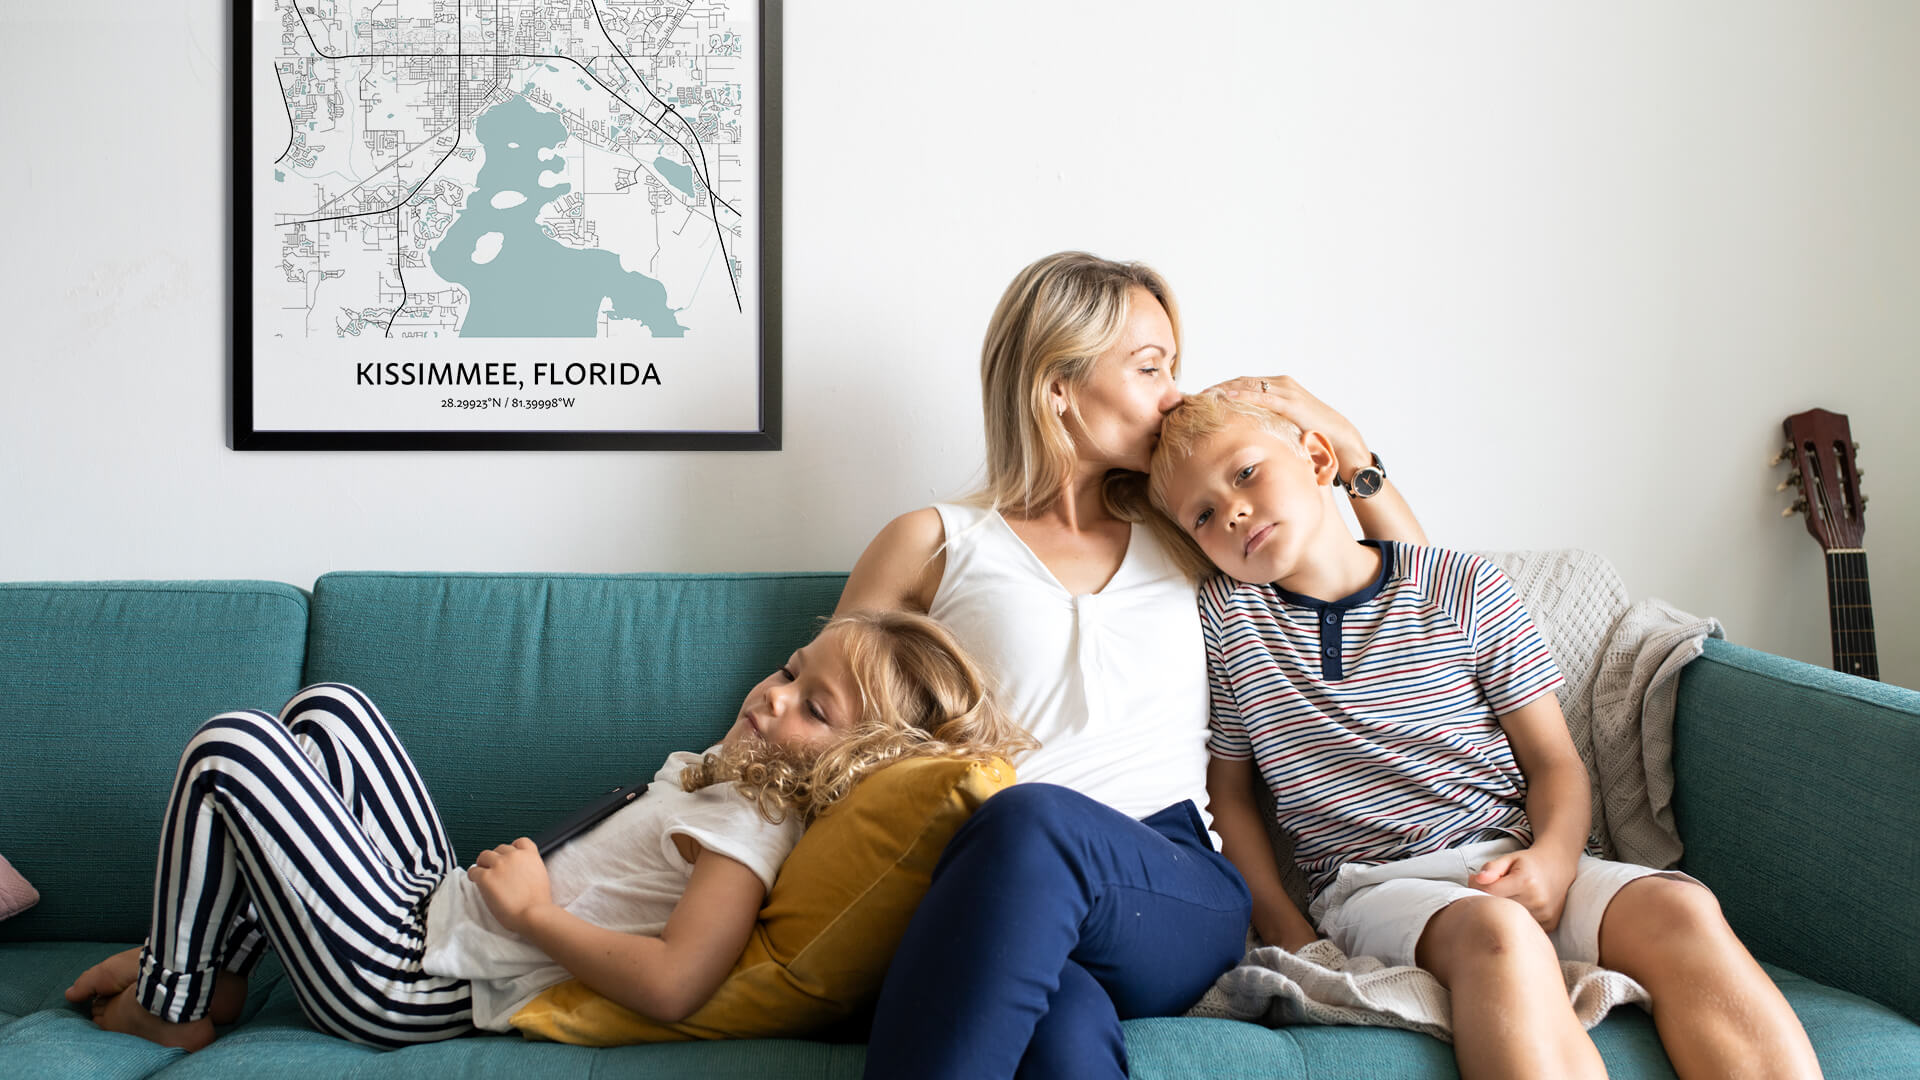 Kissimmee map poster